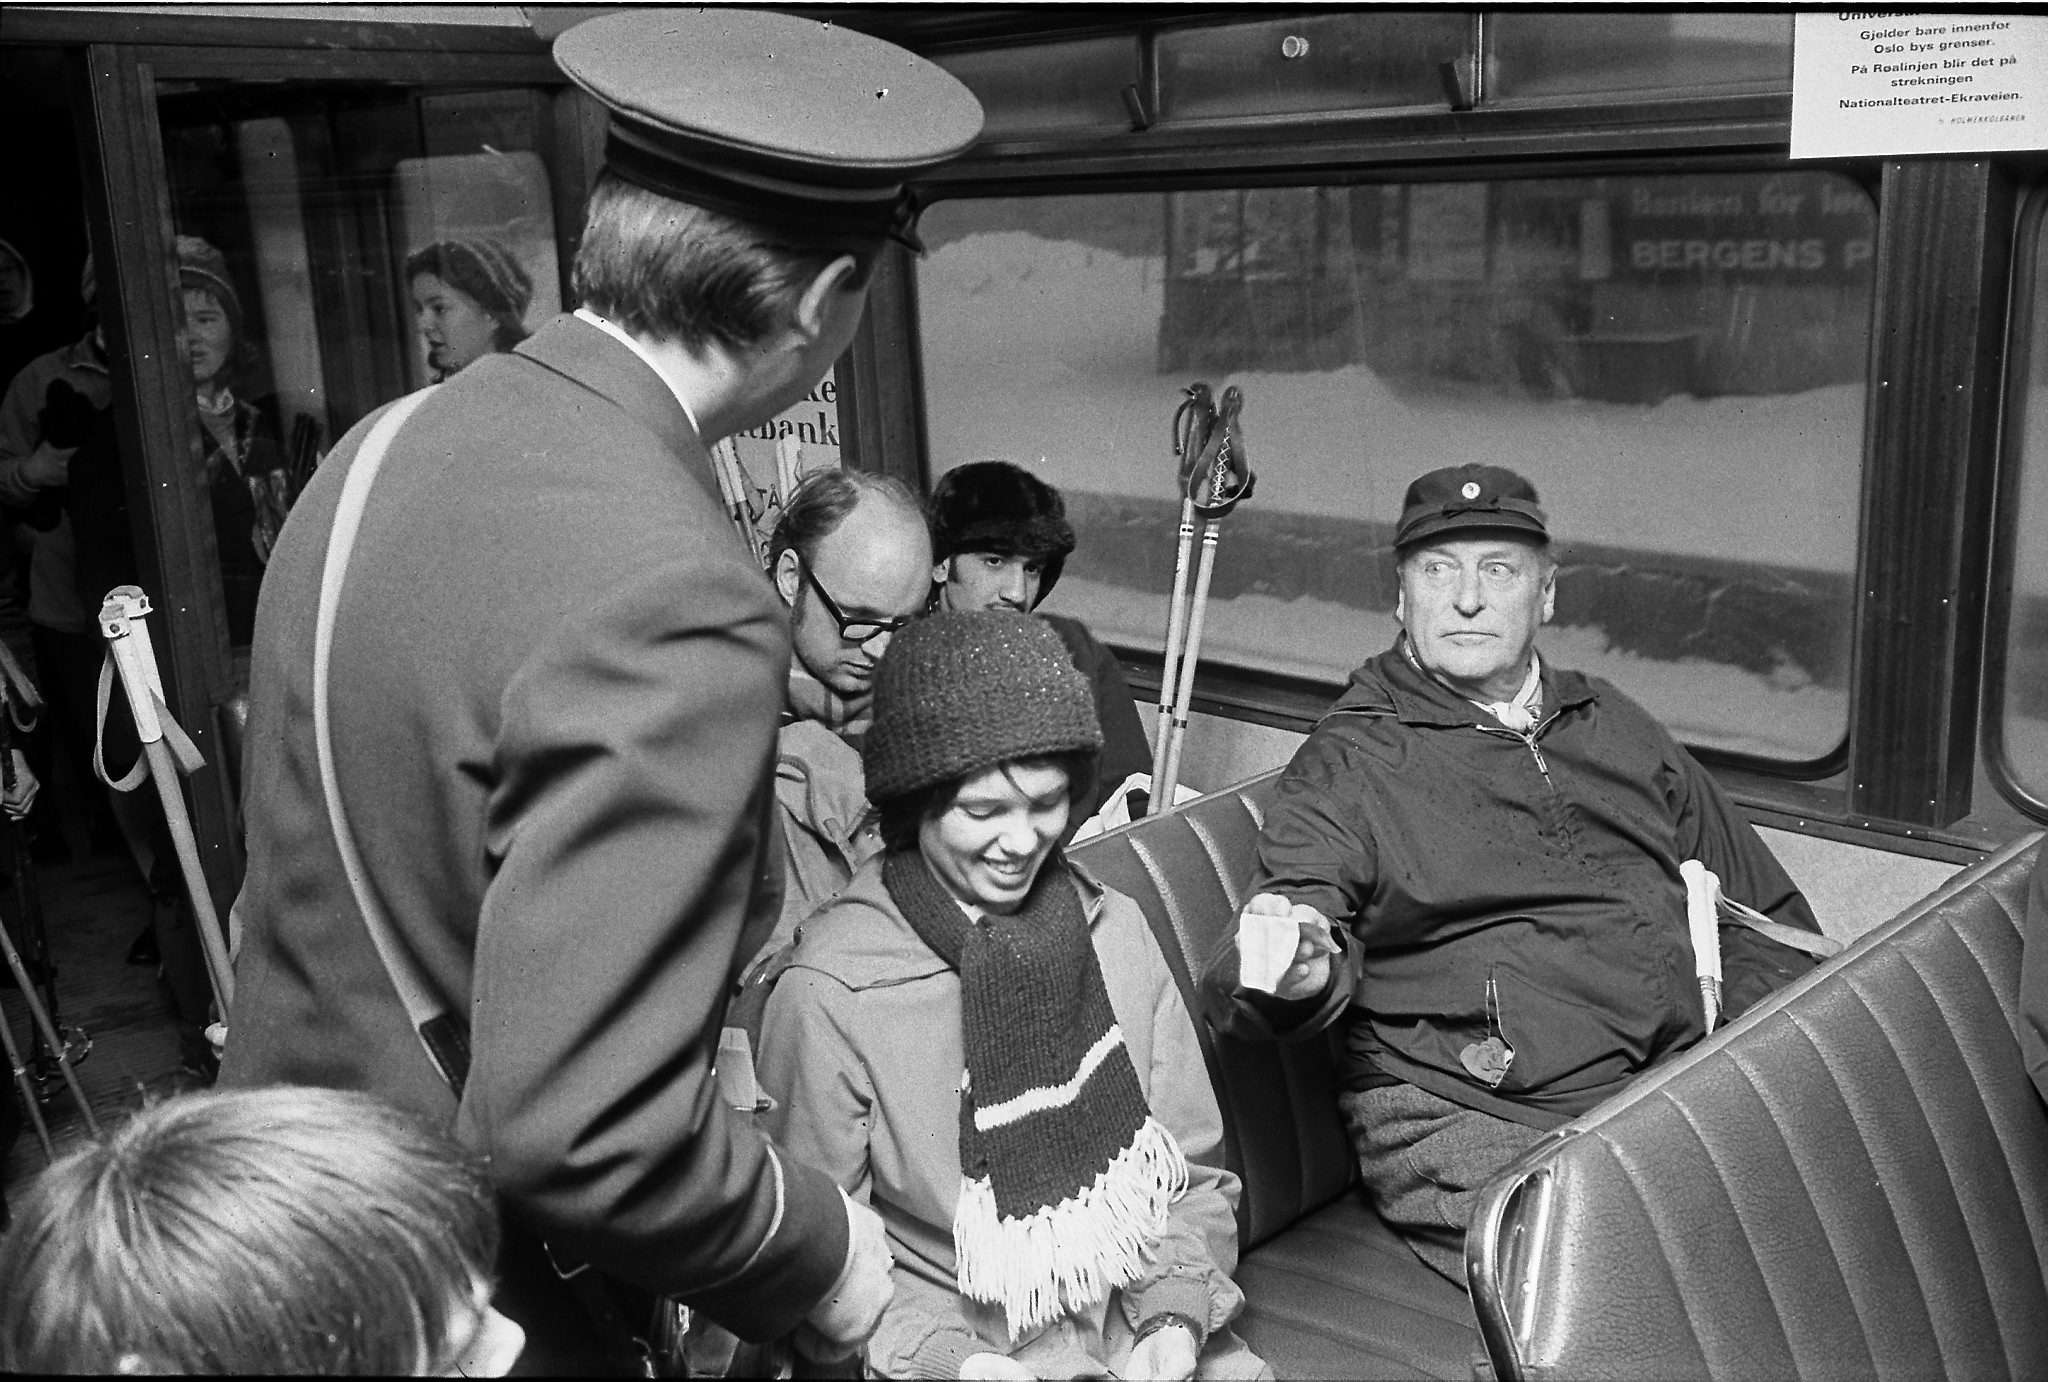 the-king-of-norway-olaf-v-is-traveling-by-tram-1973